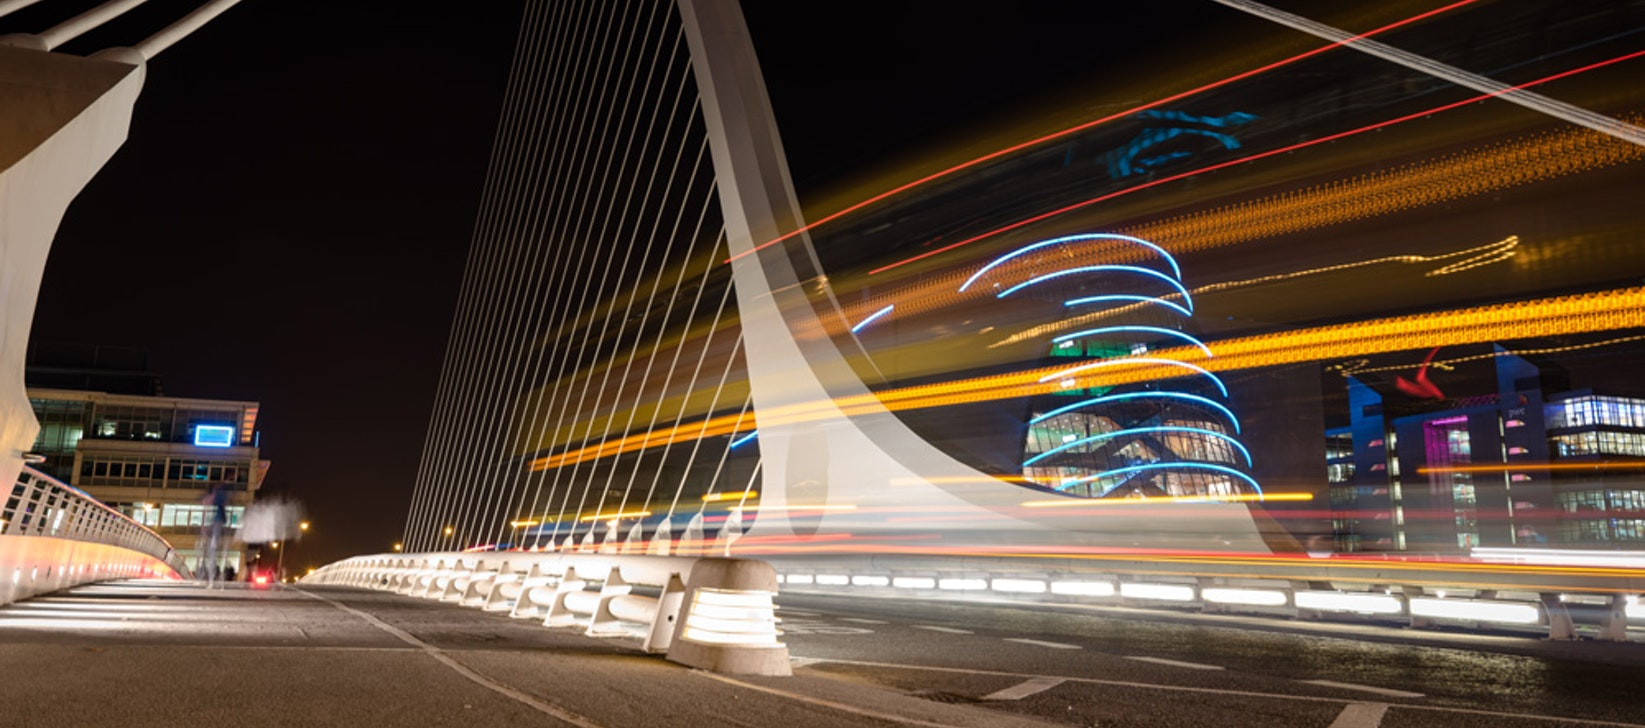 Benchmarking Dublin's competitiveness